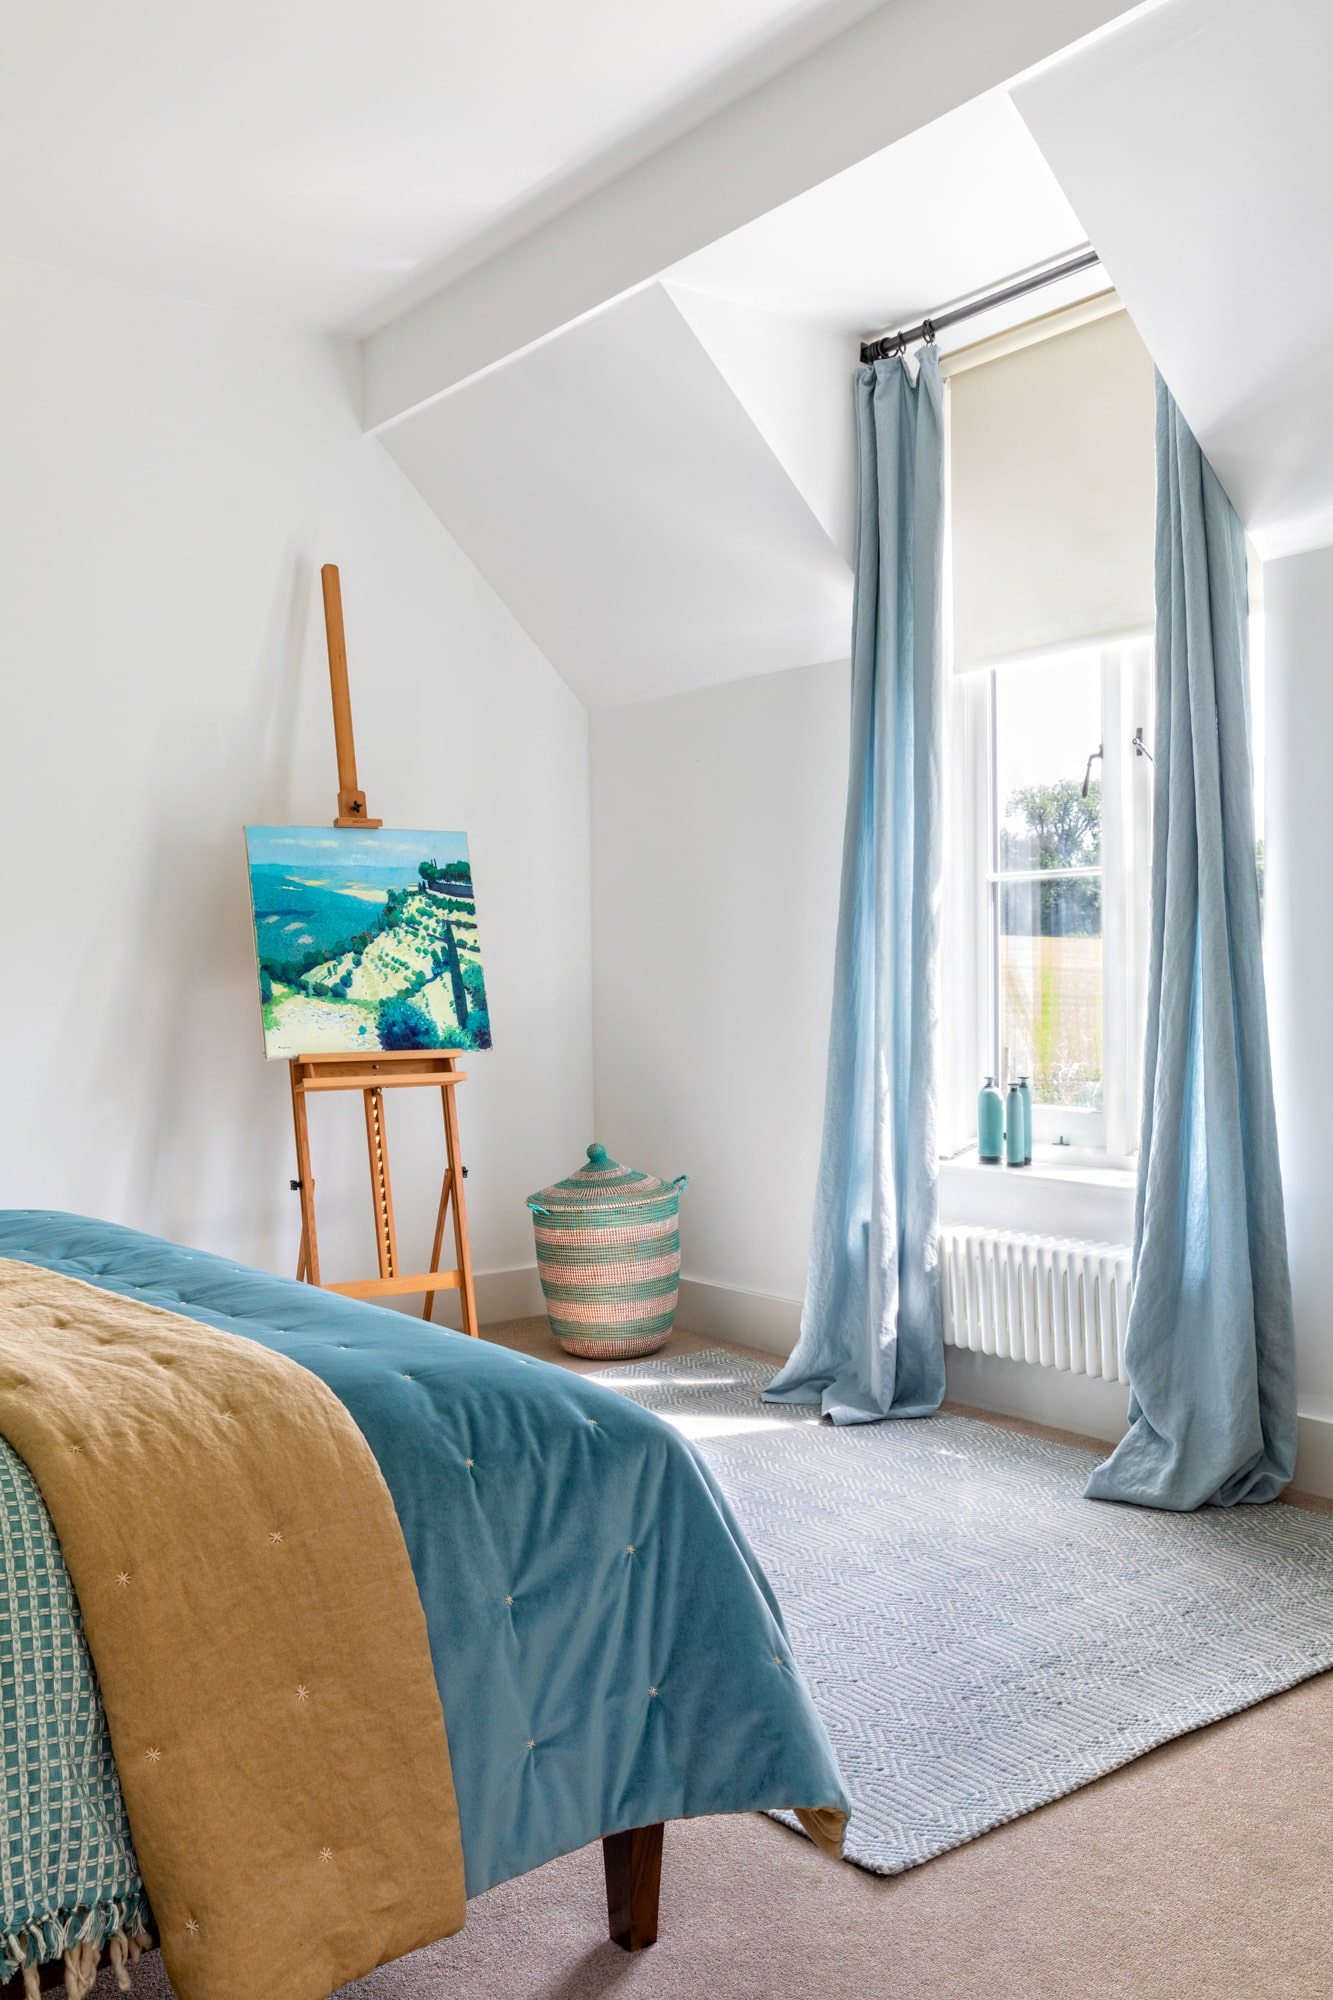 Interior photo: bedroom in a country house, a corner of bed with blue cover, blue curtains and art on easel